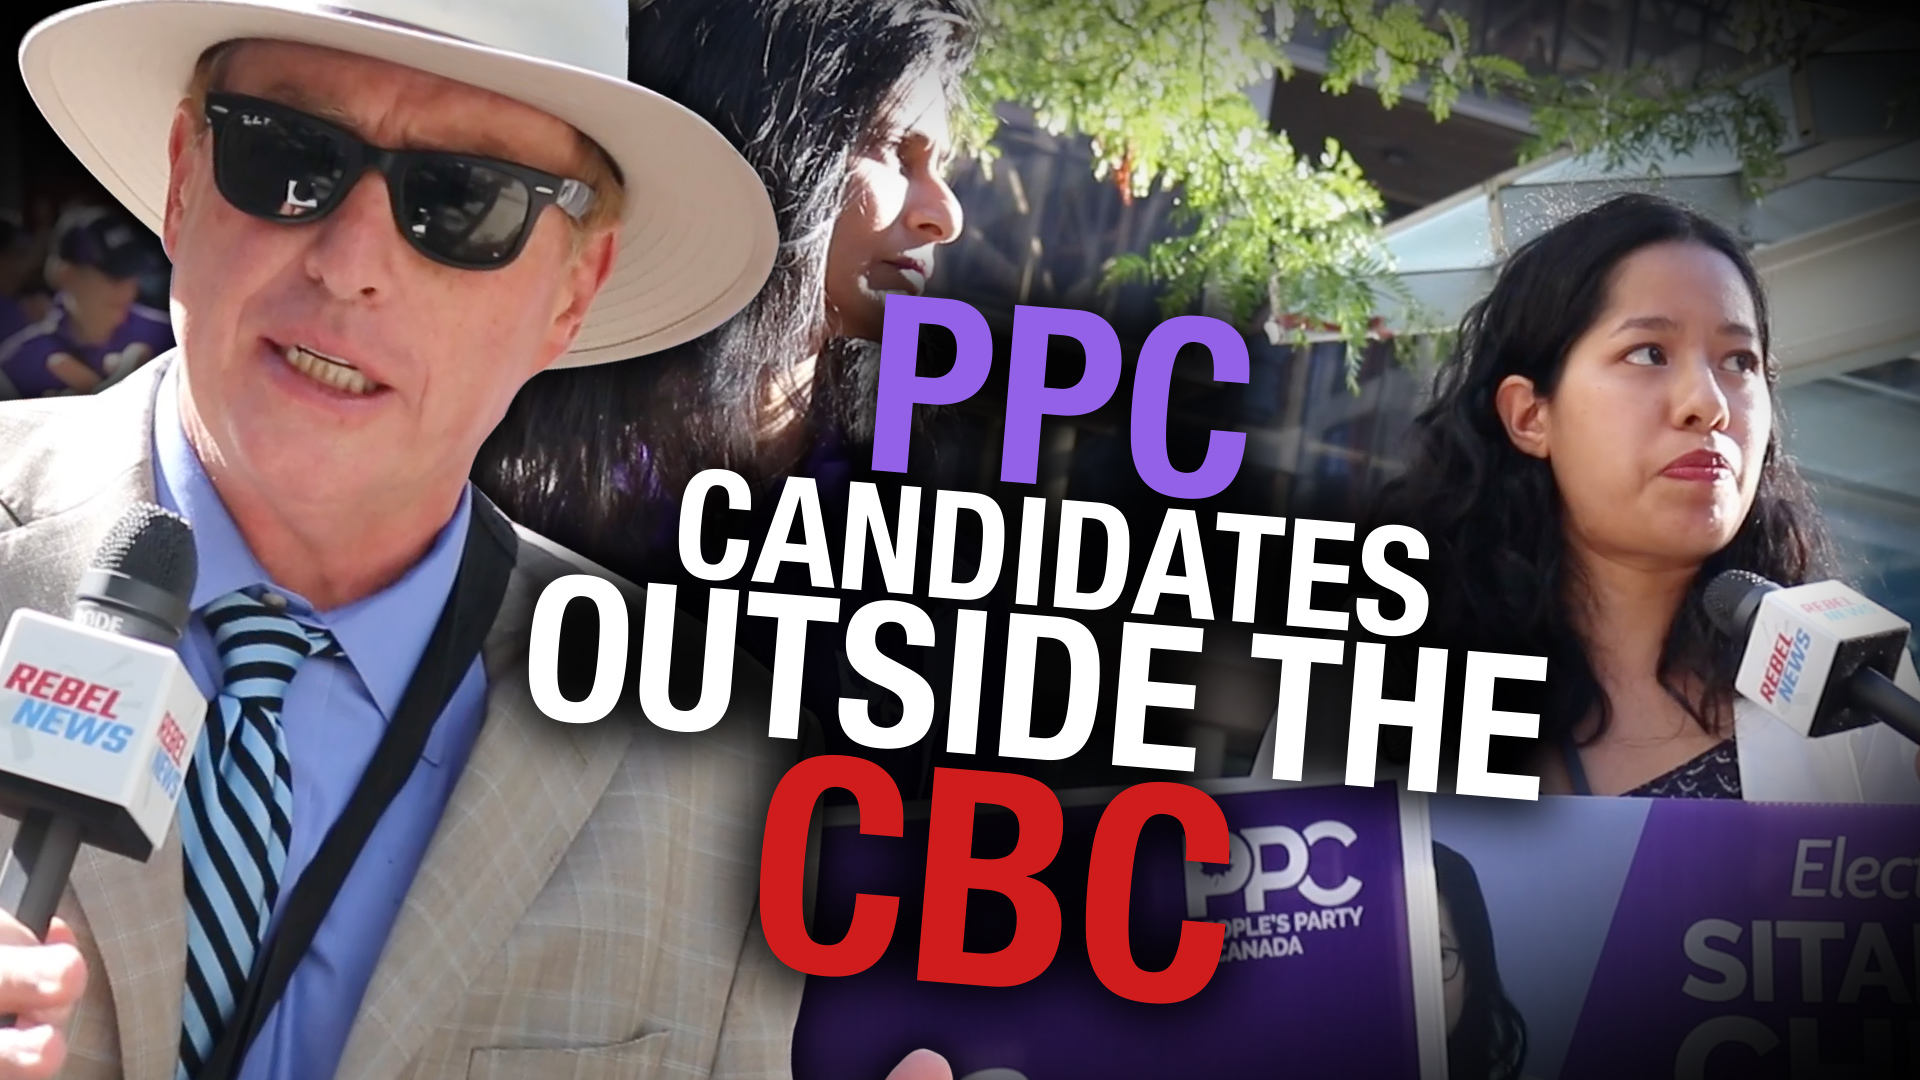 PPC leader Maxime Bernier stages big rally outside CBC headquarters in Toronto